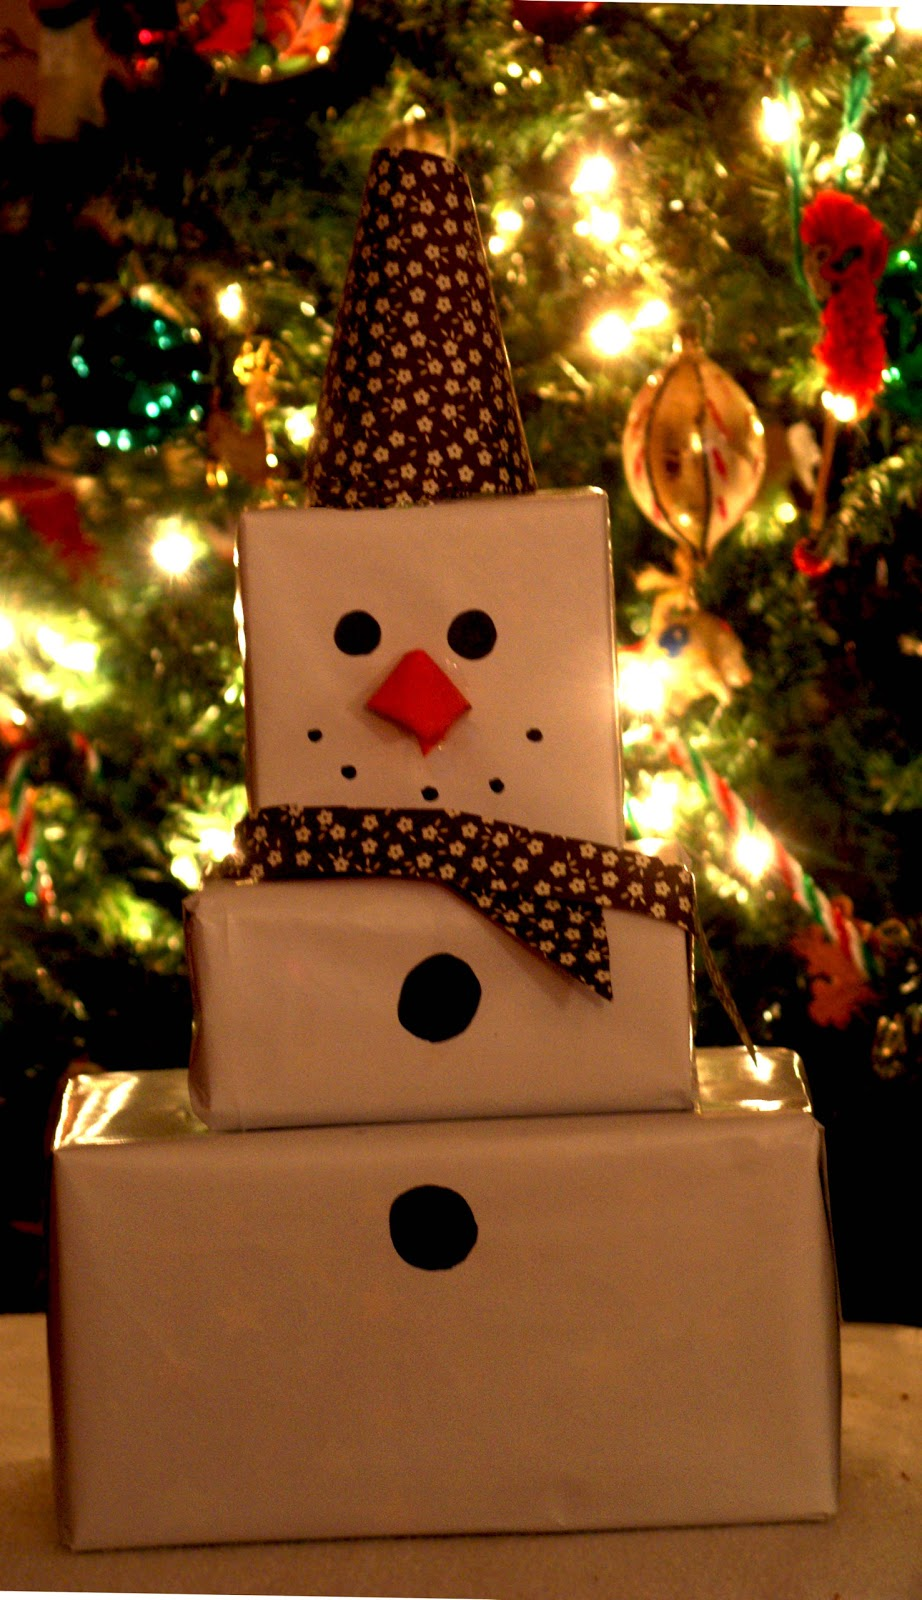 Sparkling silver and glittering gold wrapping make gifts ... |Wrapped Christmas Presents Under The Tree